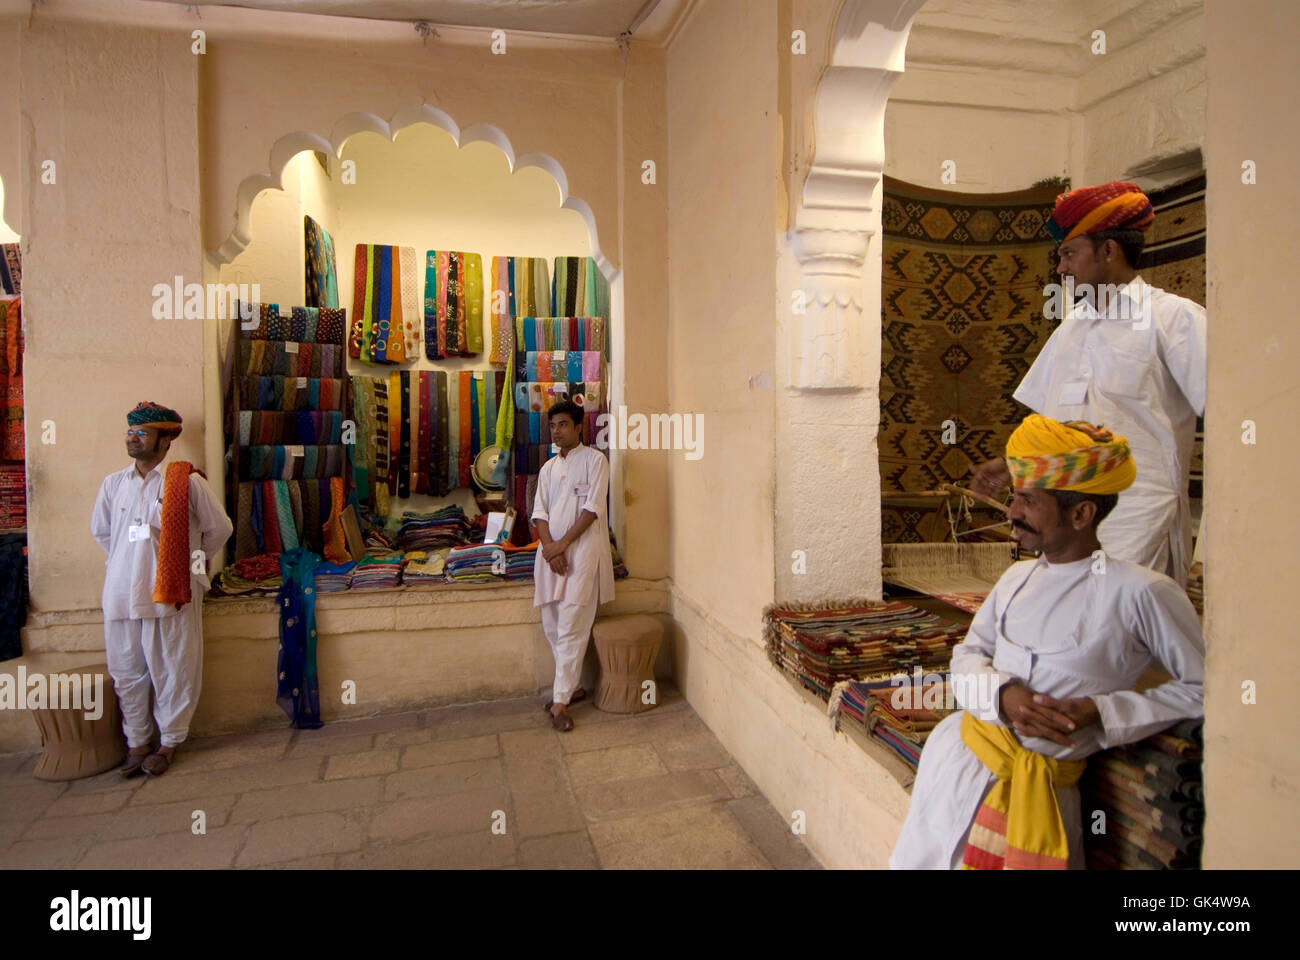 2009 --- Tourist souvenir shops inside Mehrangarh Fort in Jodhpur, India. The fort contains a museum and other architectural - Stock Image